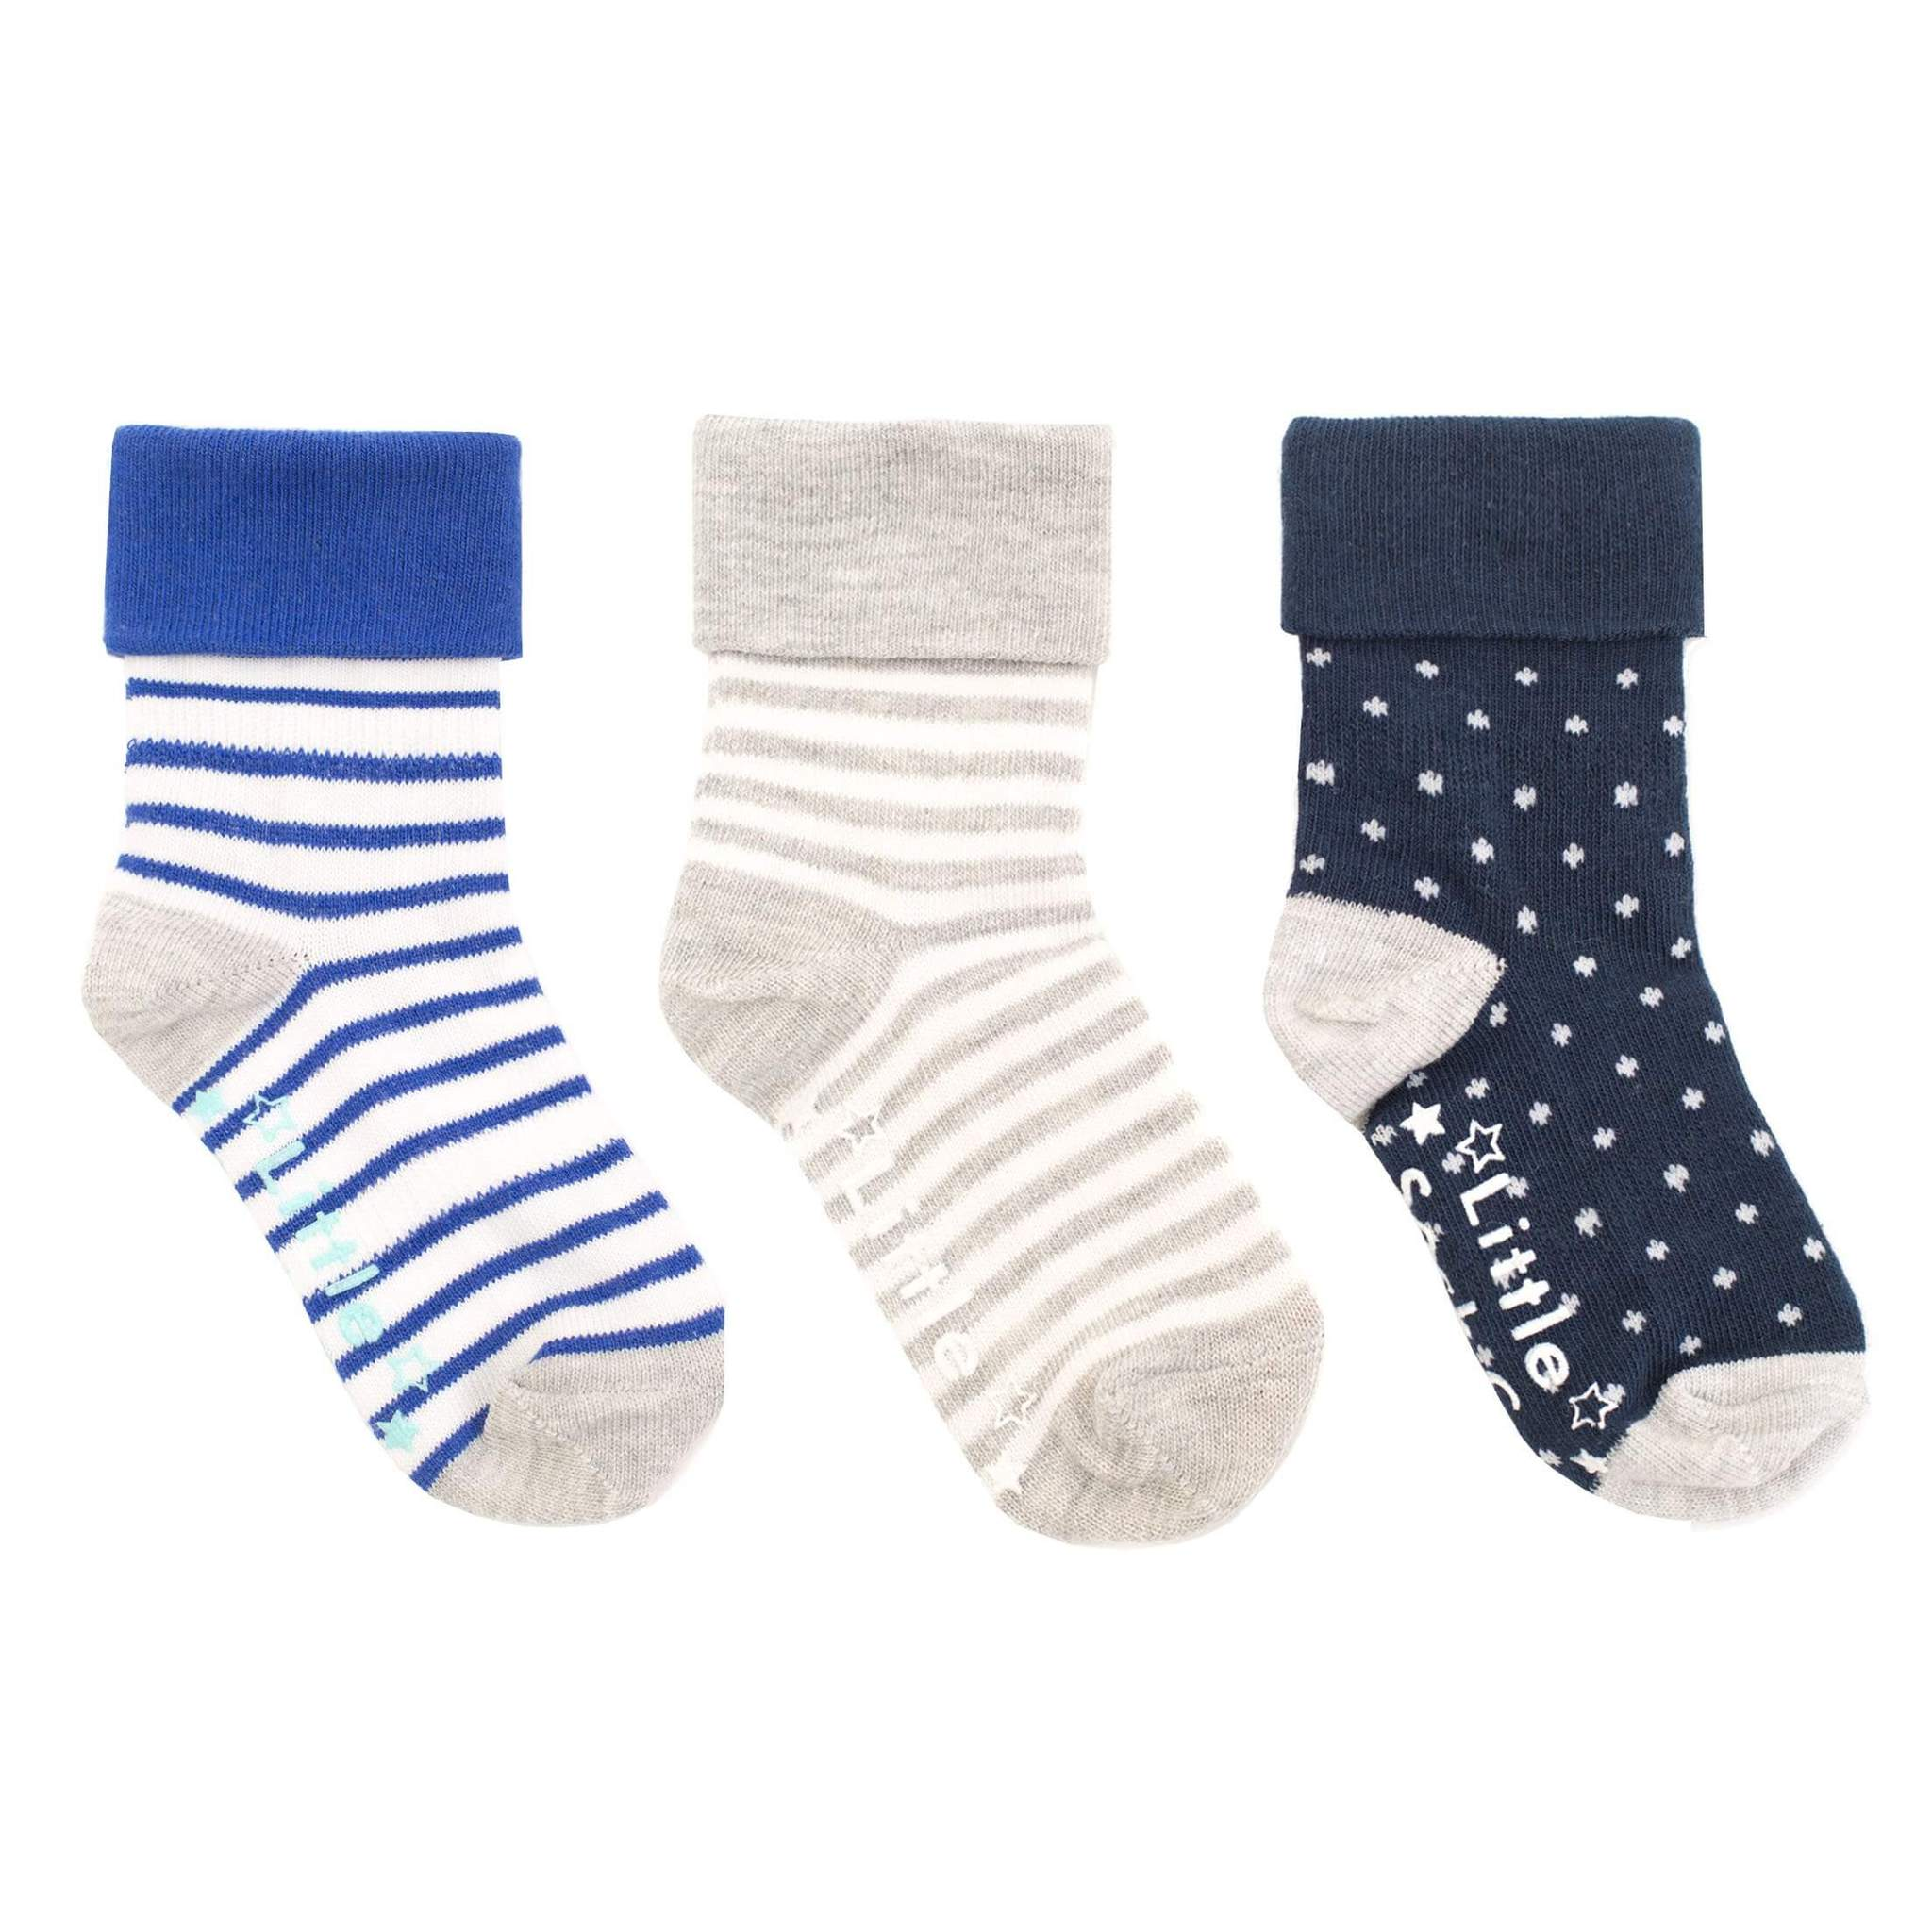 NON - SLIP STAY ON SOCKS - (3 PAIR) MARINE BLUE AND WHITE WHITE WIDE STRIPE, NAVY WITH A WHITE PIN DOT AND GREY MARL AND WHITE STRIPE